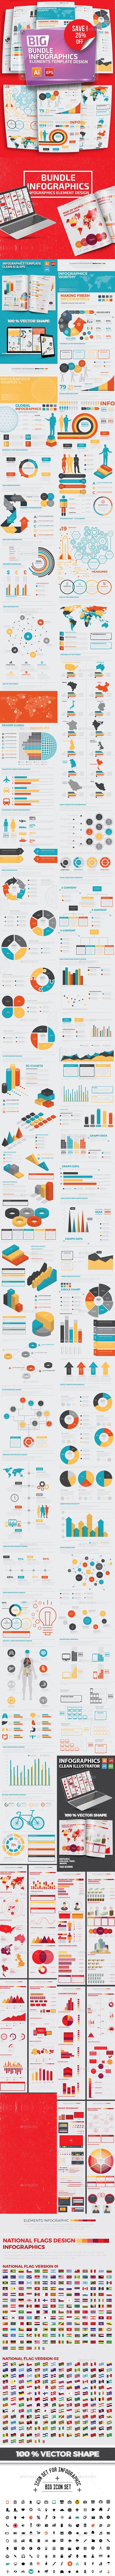 GraphicRiver Bundle Infographic Elements 20548619